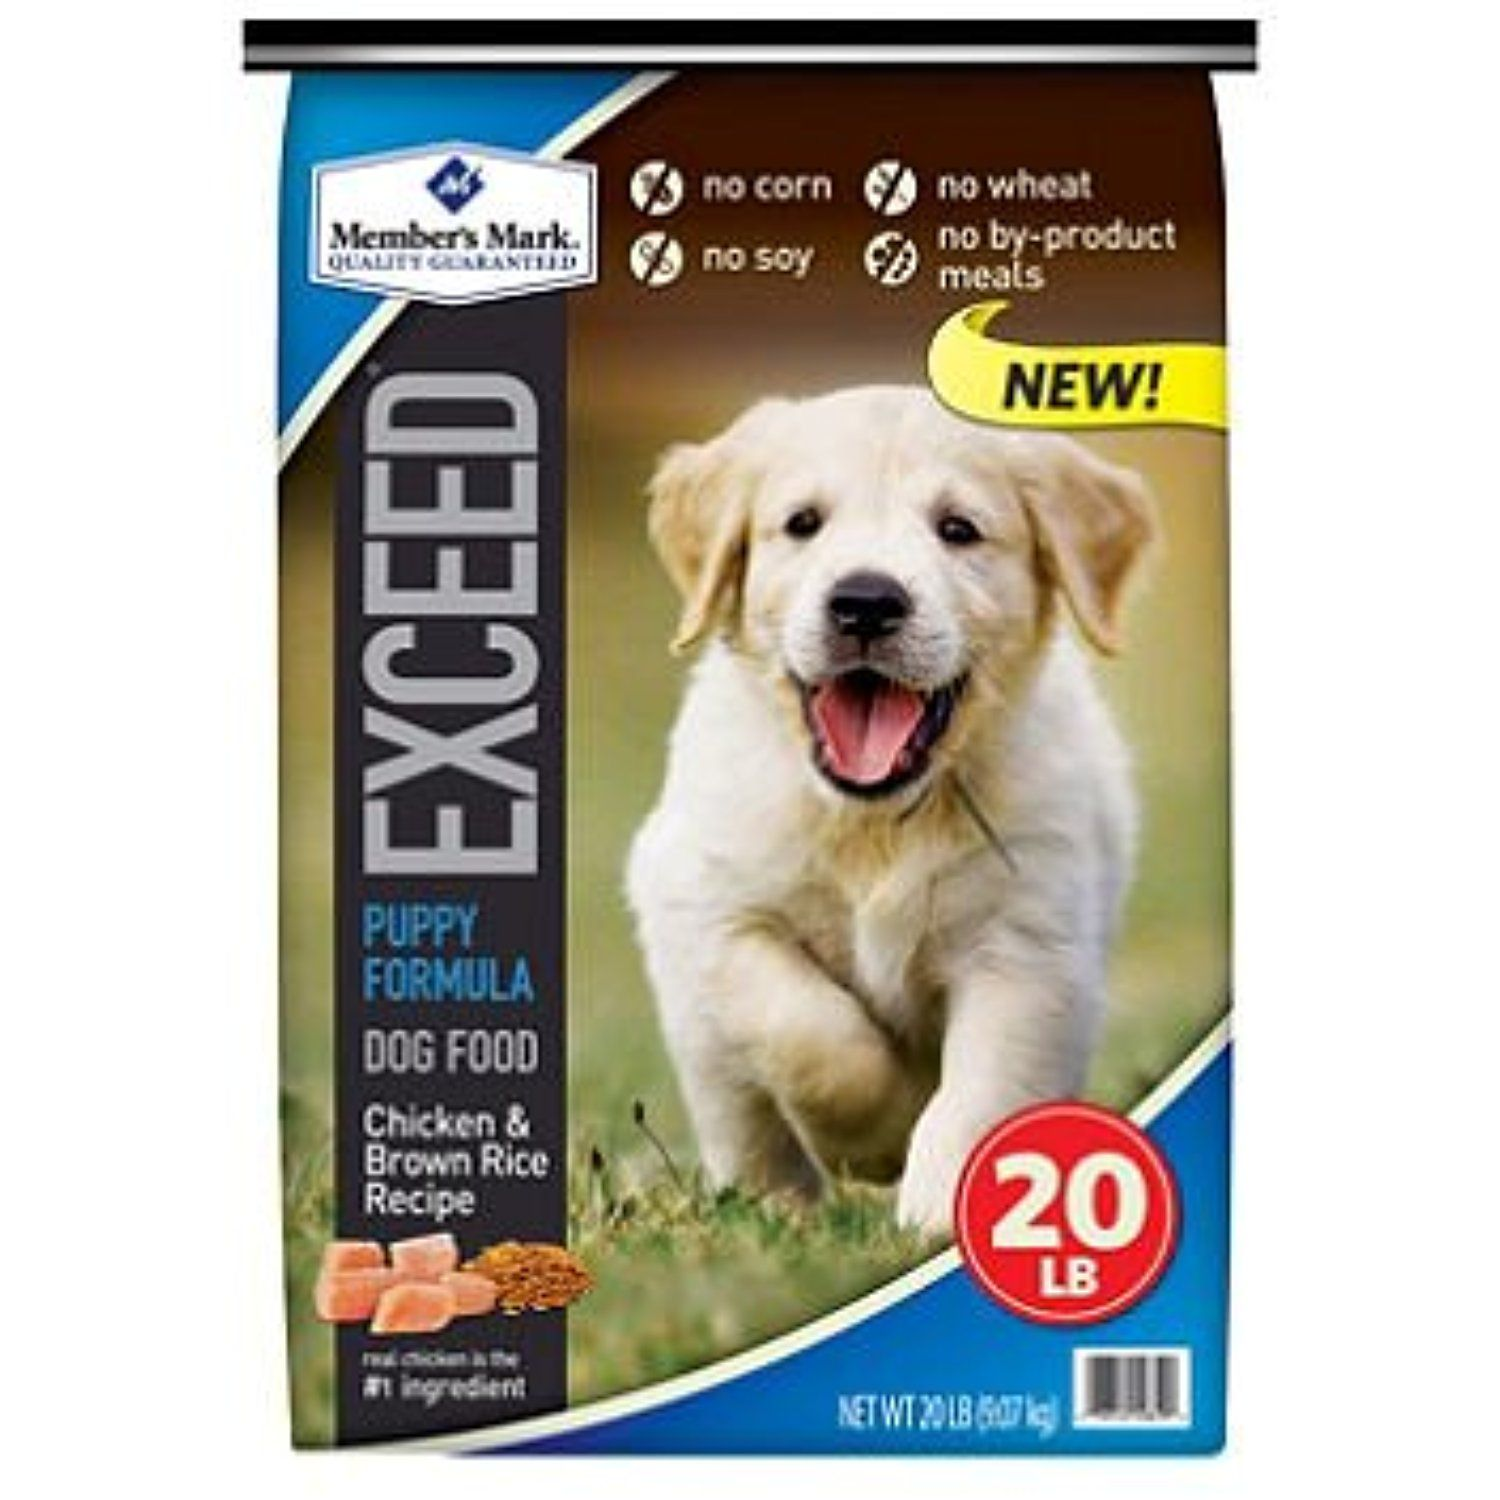 Member S Mark Exceed Puppy Food Chicken Rice 20 Lbs Sc Do